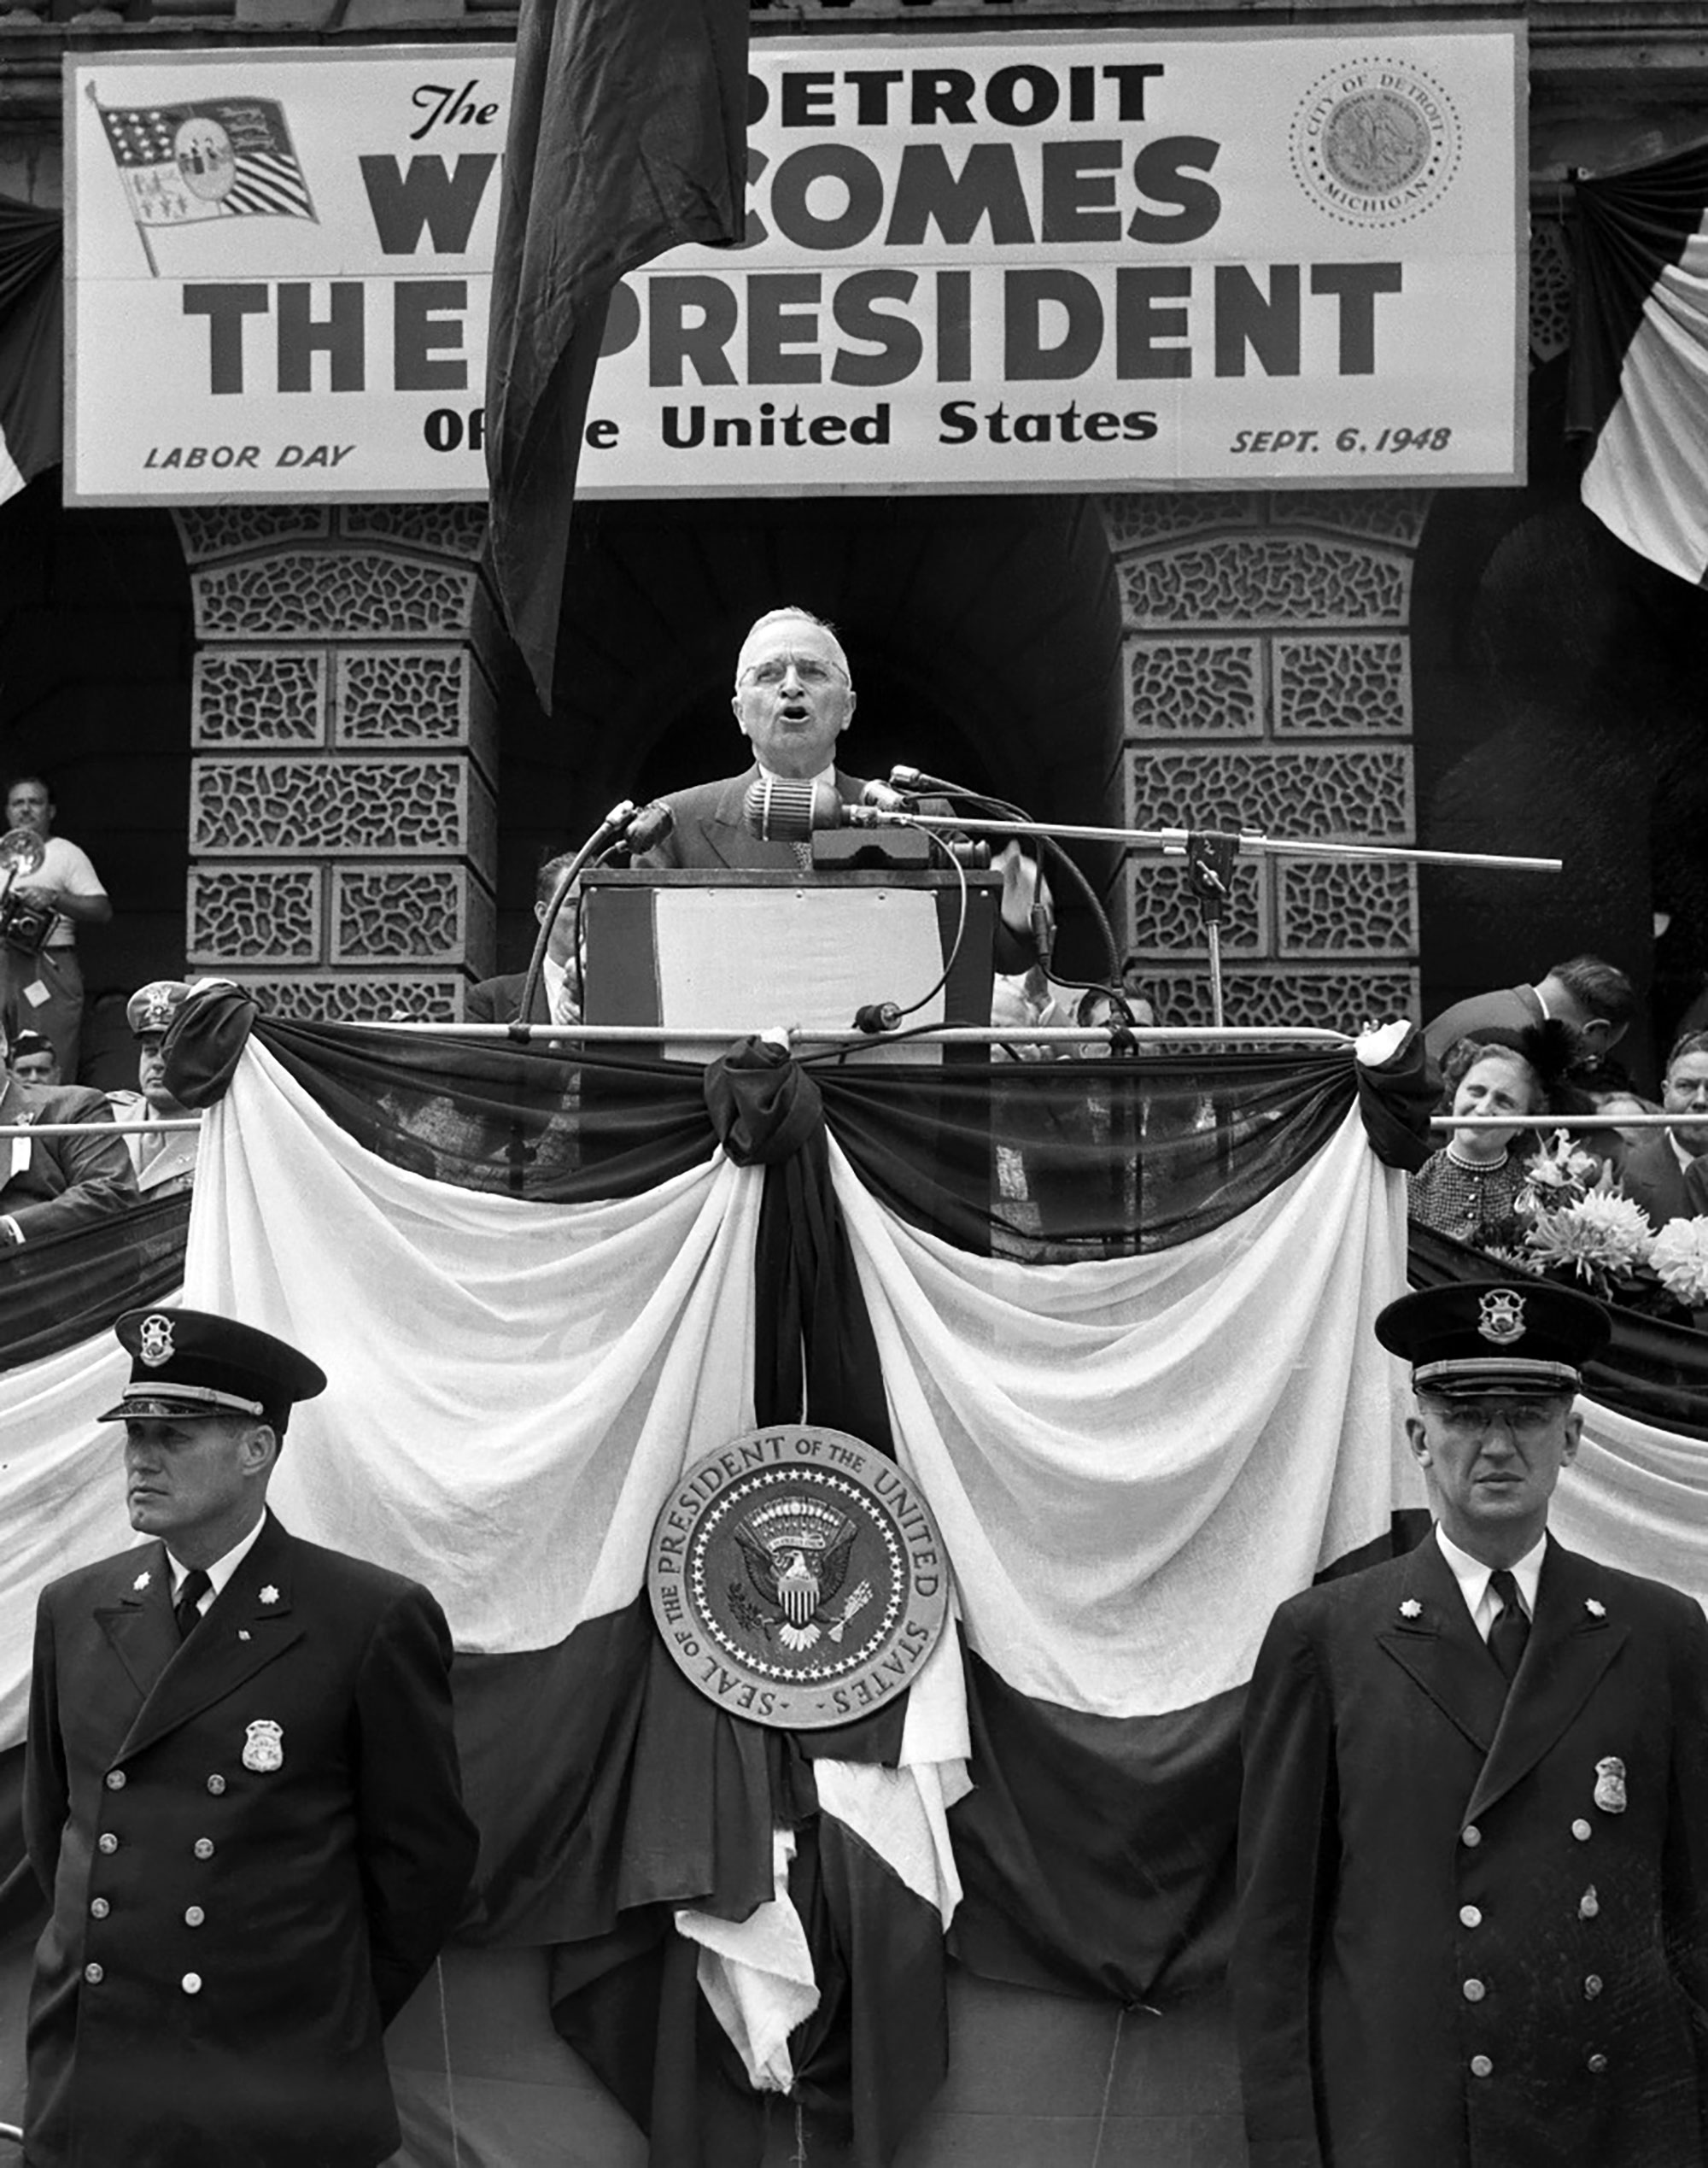 President Harry S. Truman speaking before 125,000 people in Detroit on Labor Day, 1948. Bettmann Archive — Getty Images